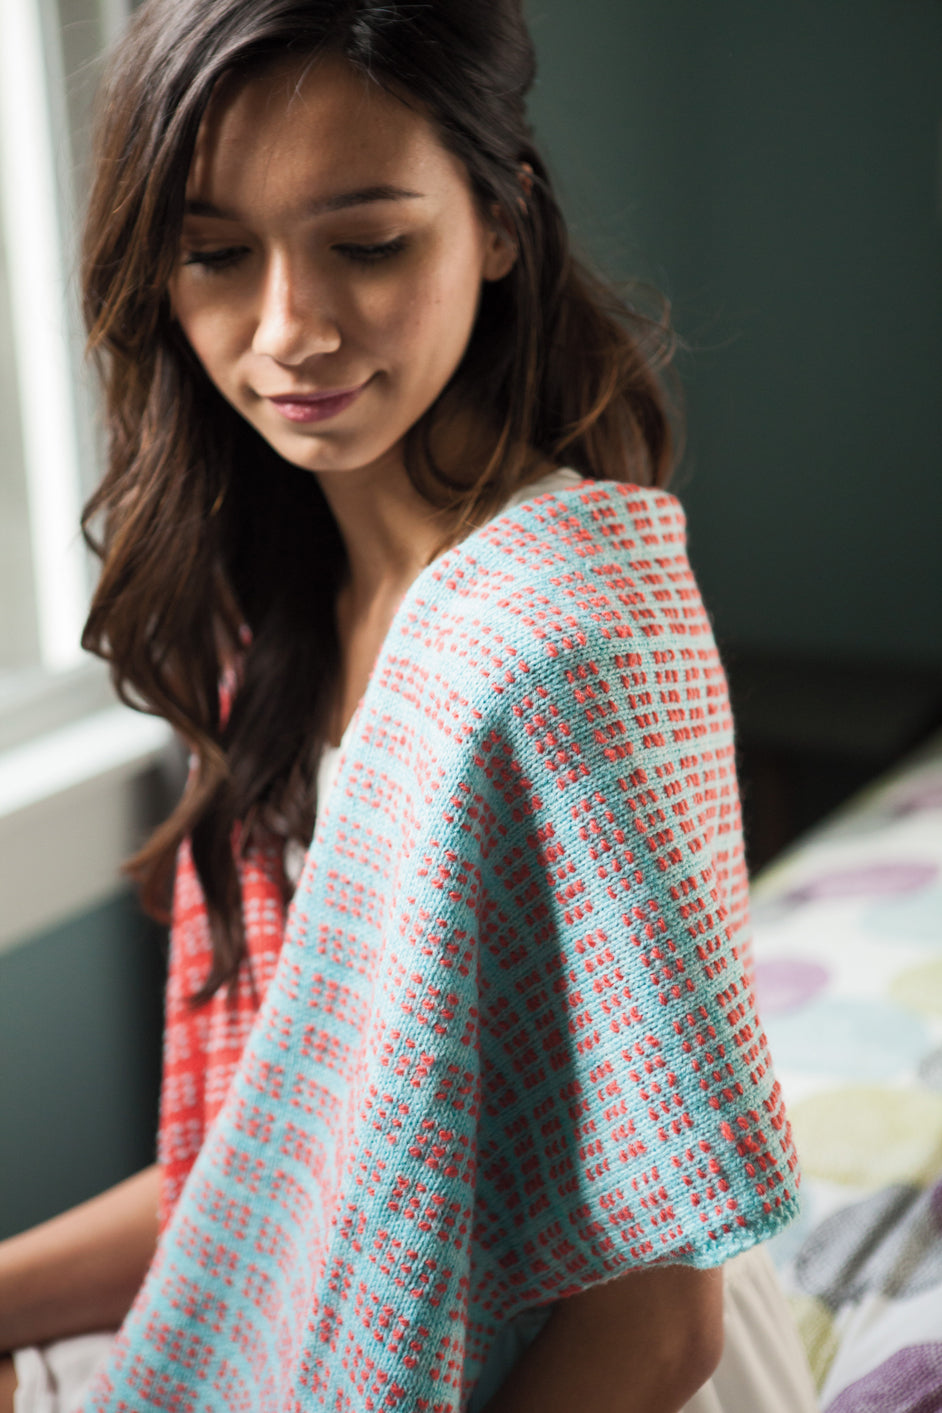 Huckle Wrap knitting pattern by Megan Goodacre